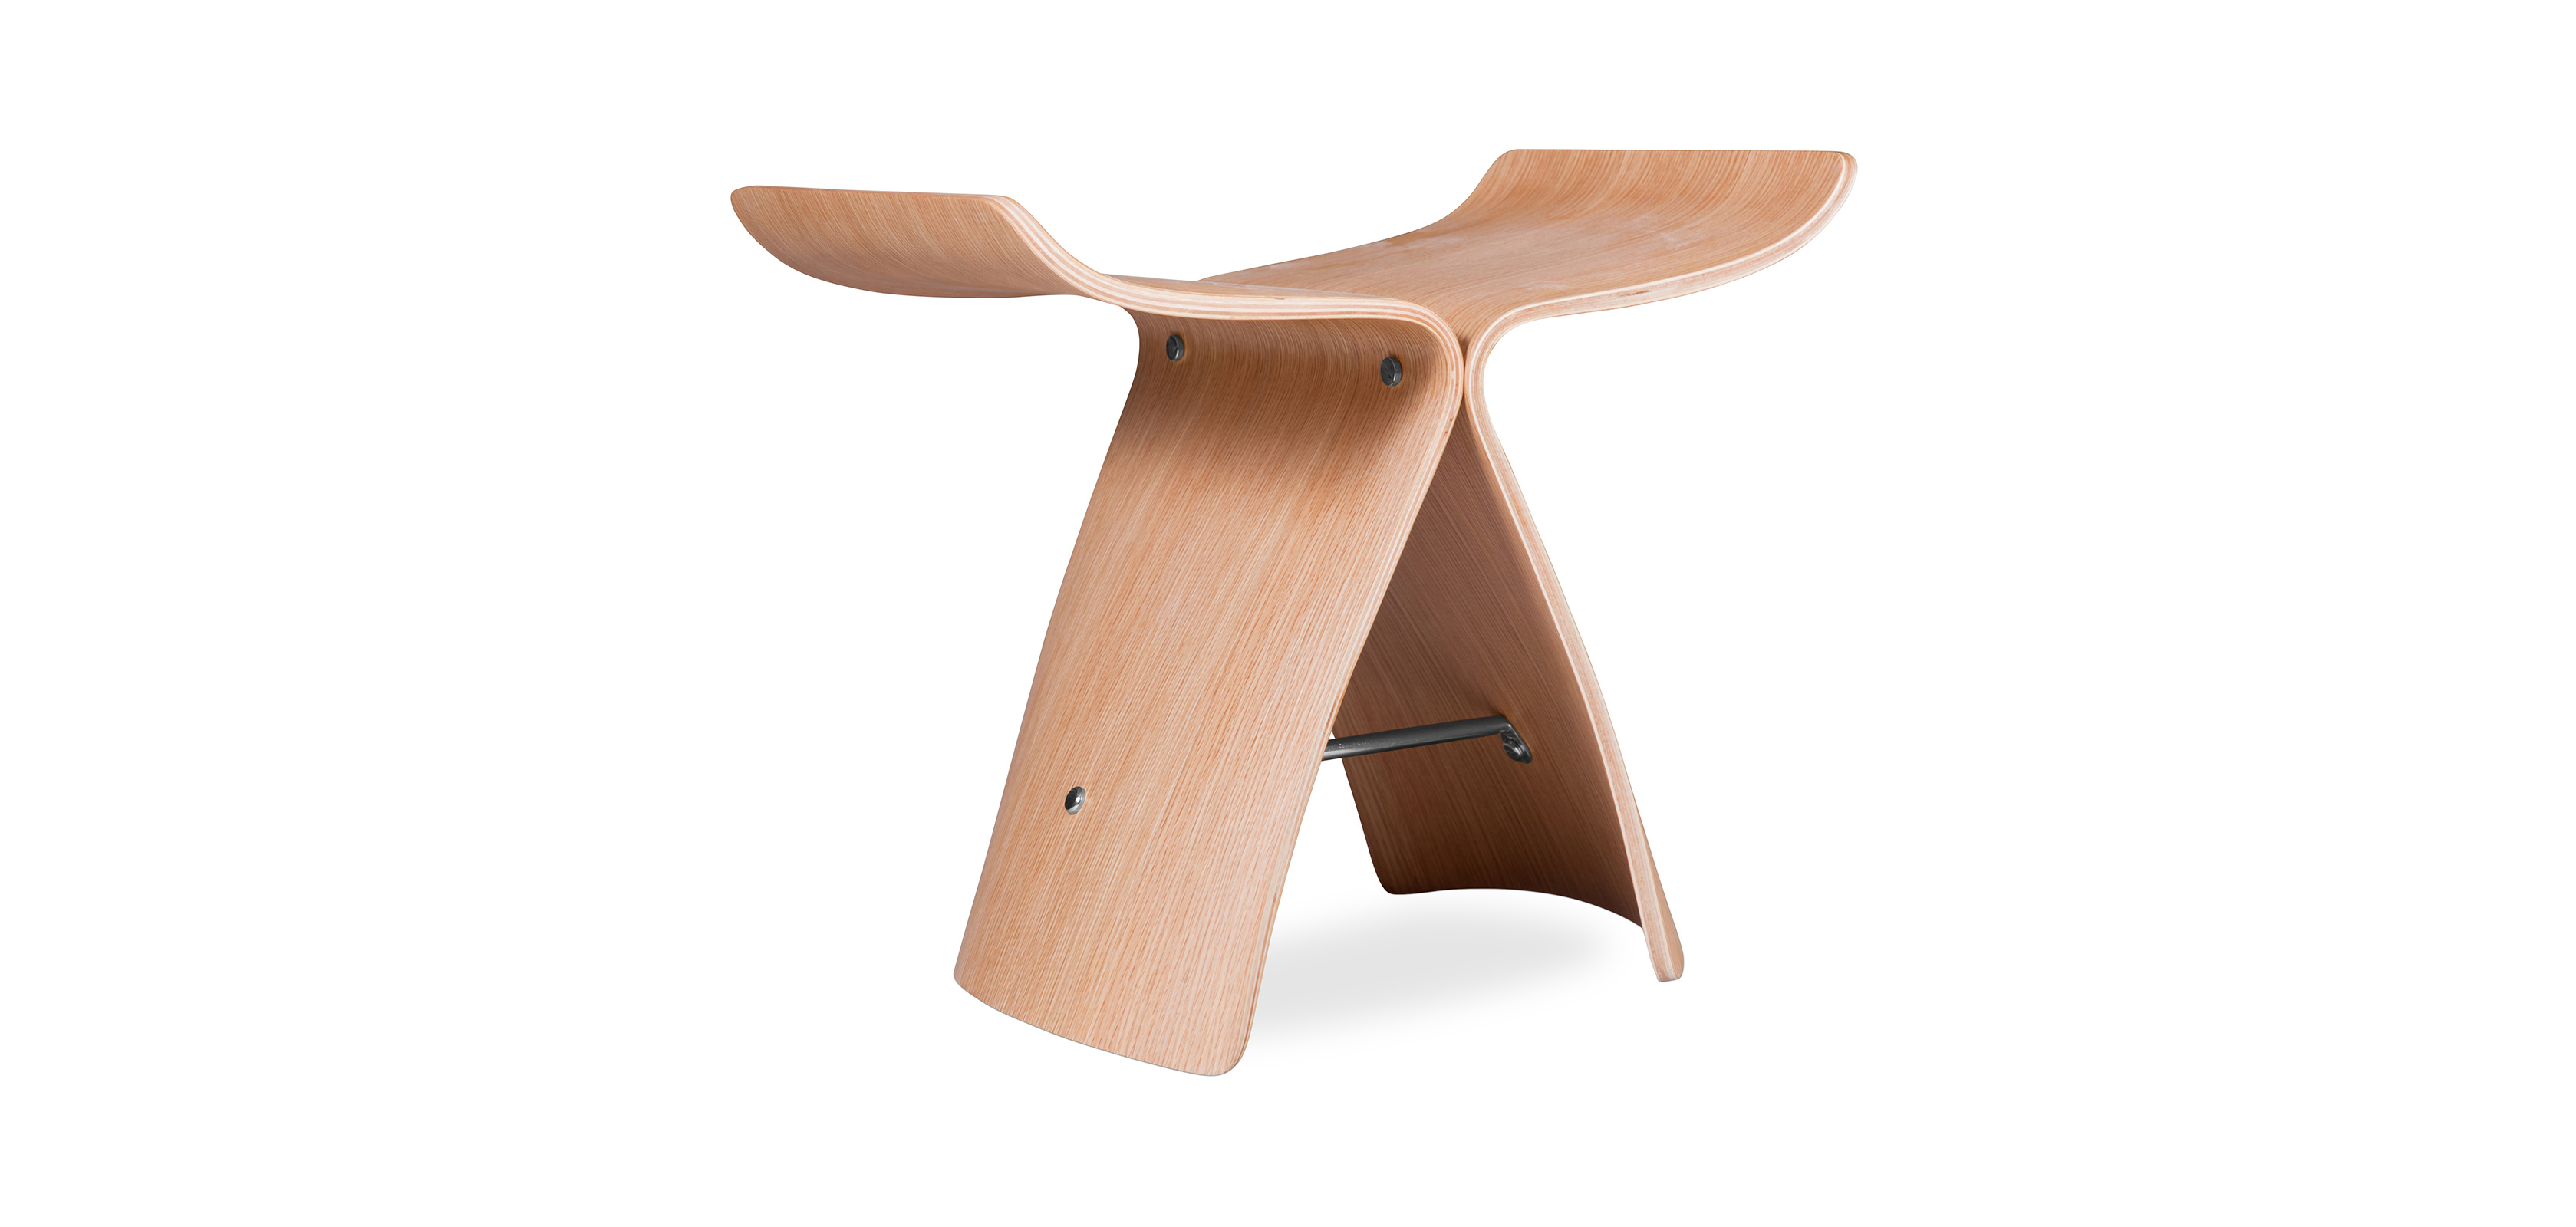 Buy Butterfly Stool Sori Yanagi Style Natural wood 16833 - in the EU